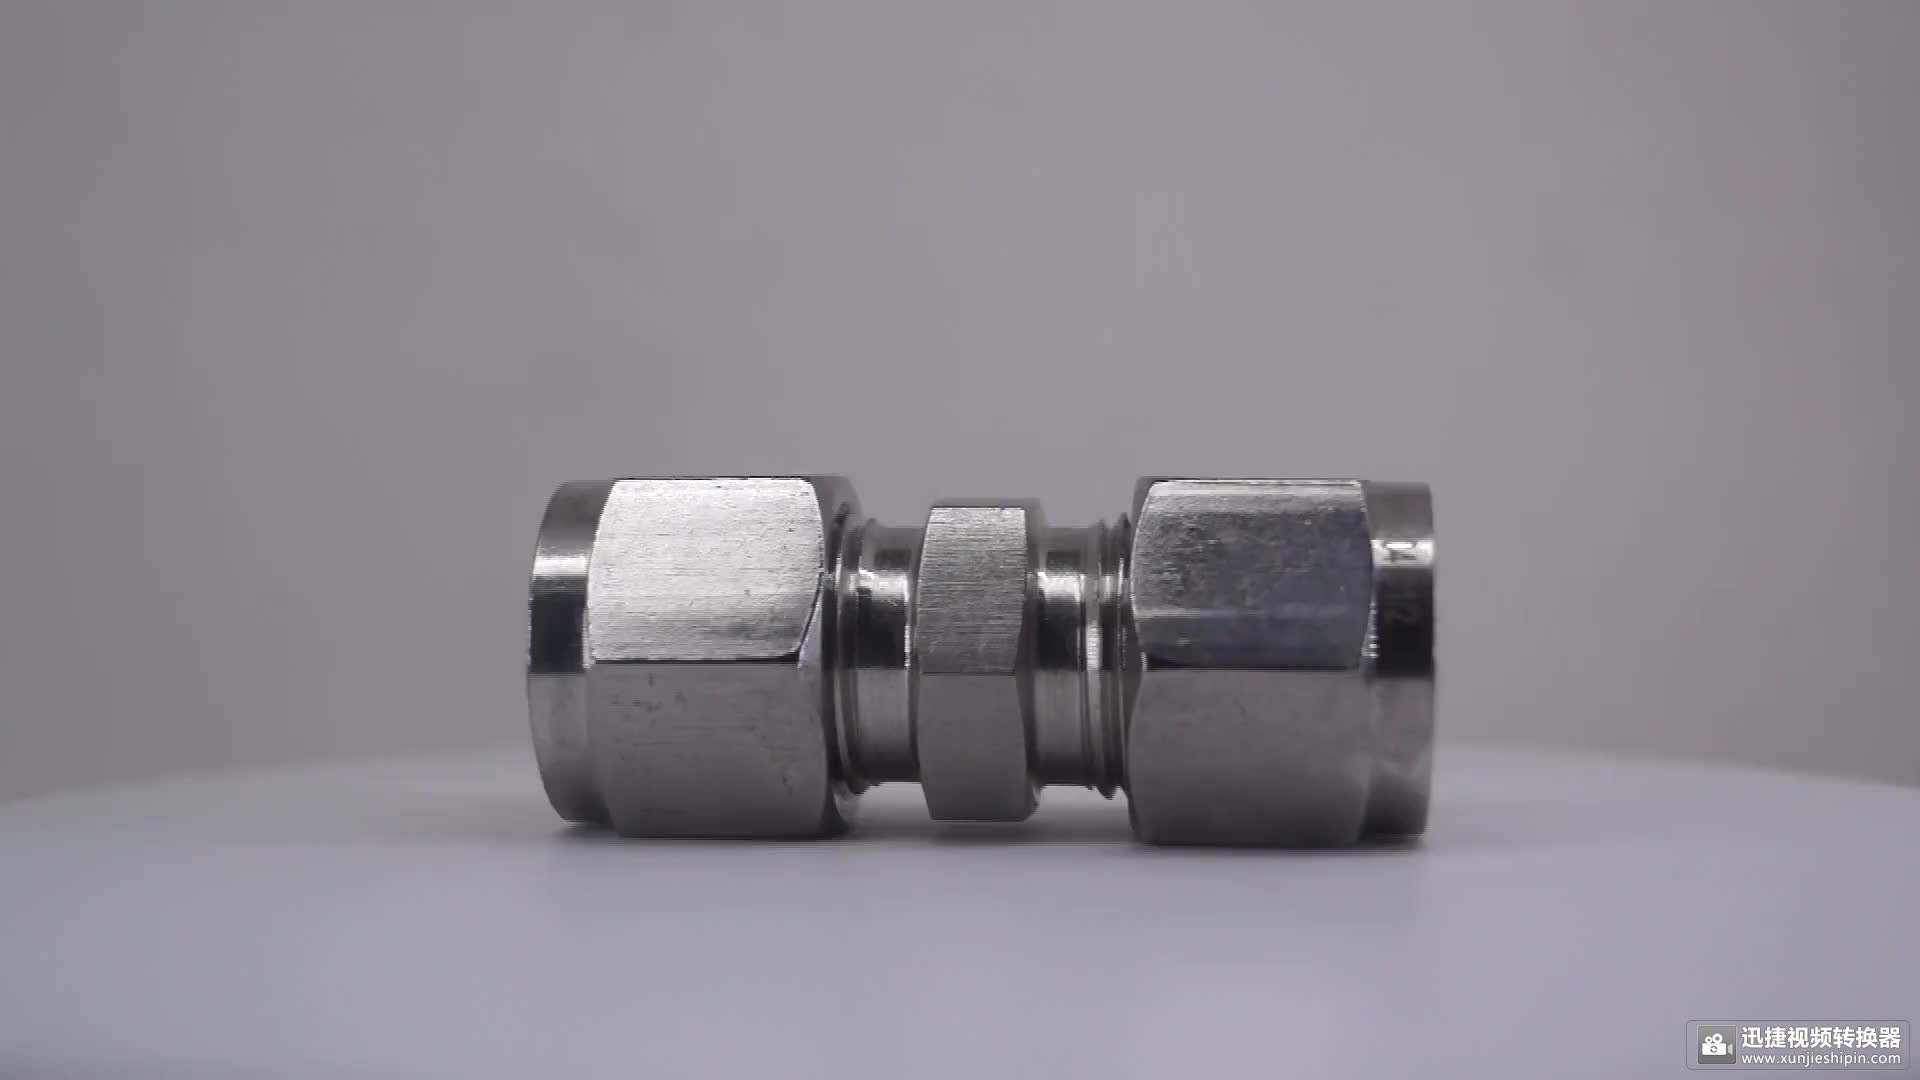 Stainless steel 316 1 inch compression bulkhead fitting